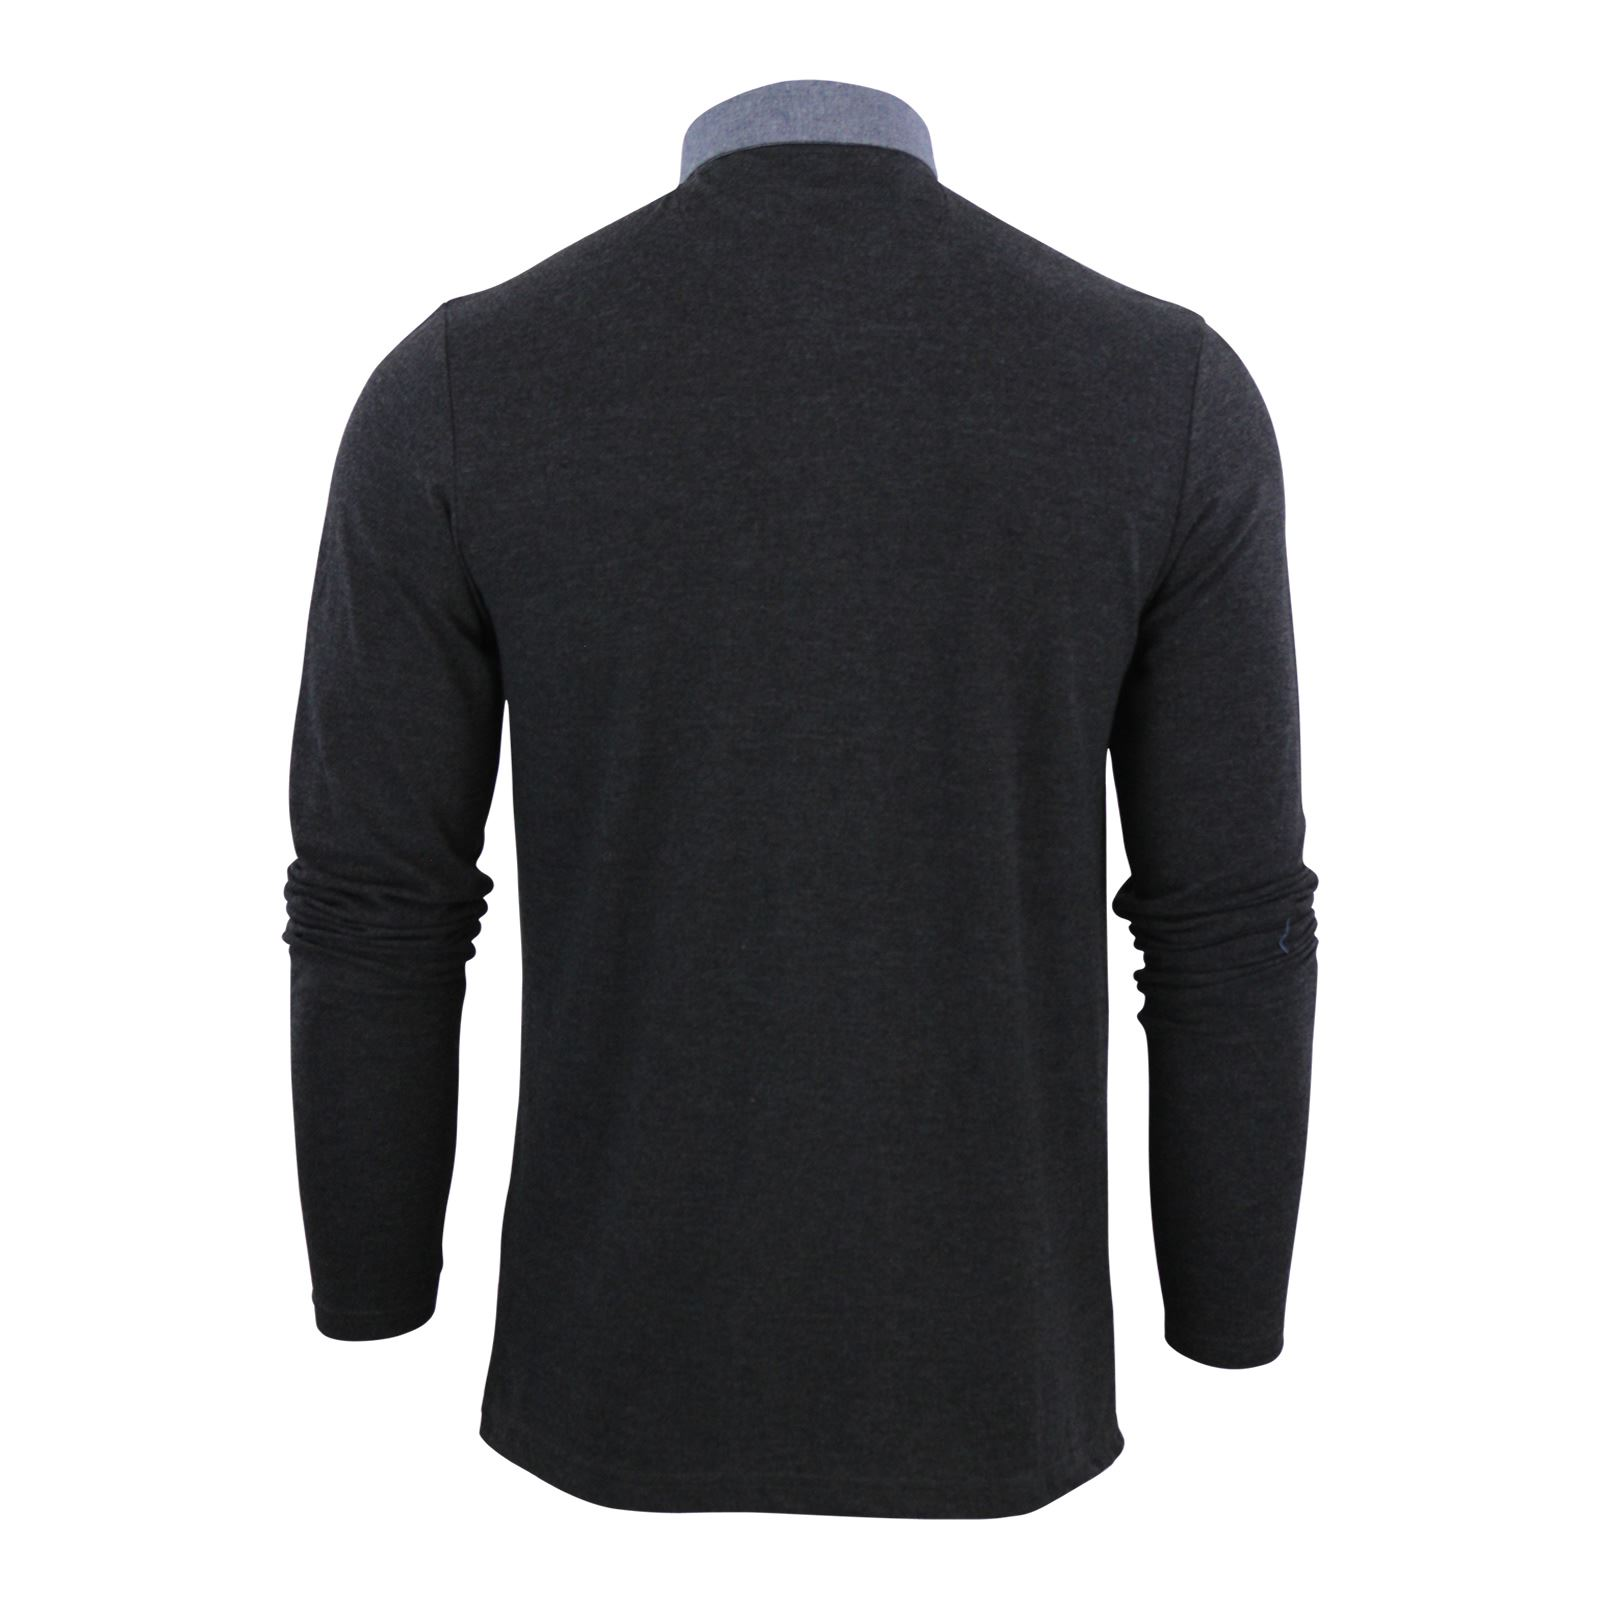 Mens-Polo-T-Shirt-Brave-Soul-Hera-Cotton-Long-Sleeve-Casual-Top thumbnail 3